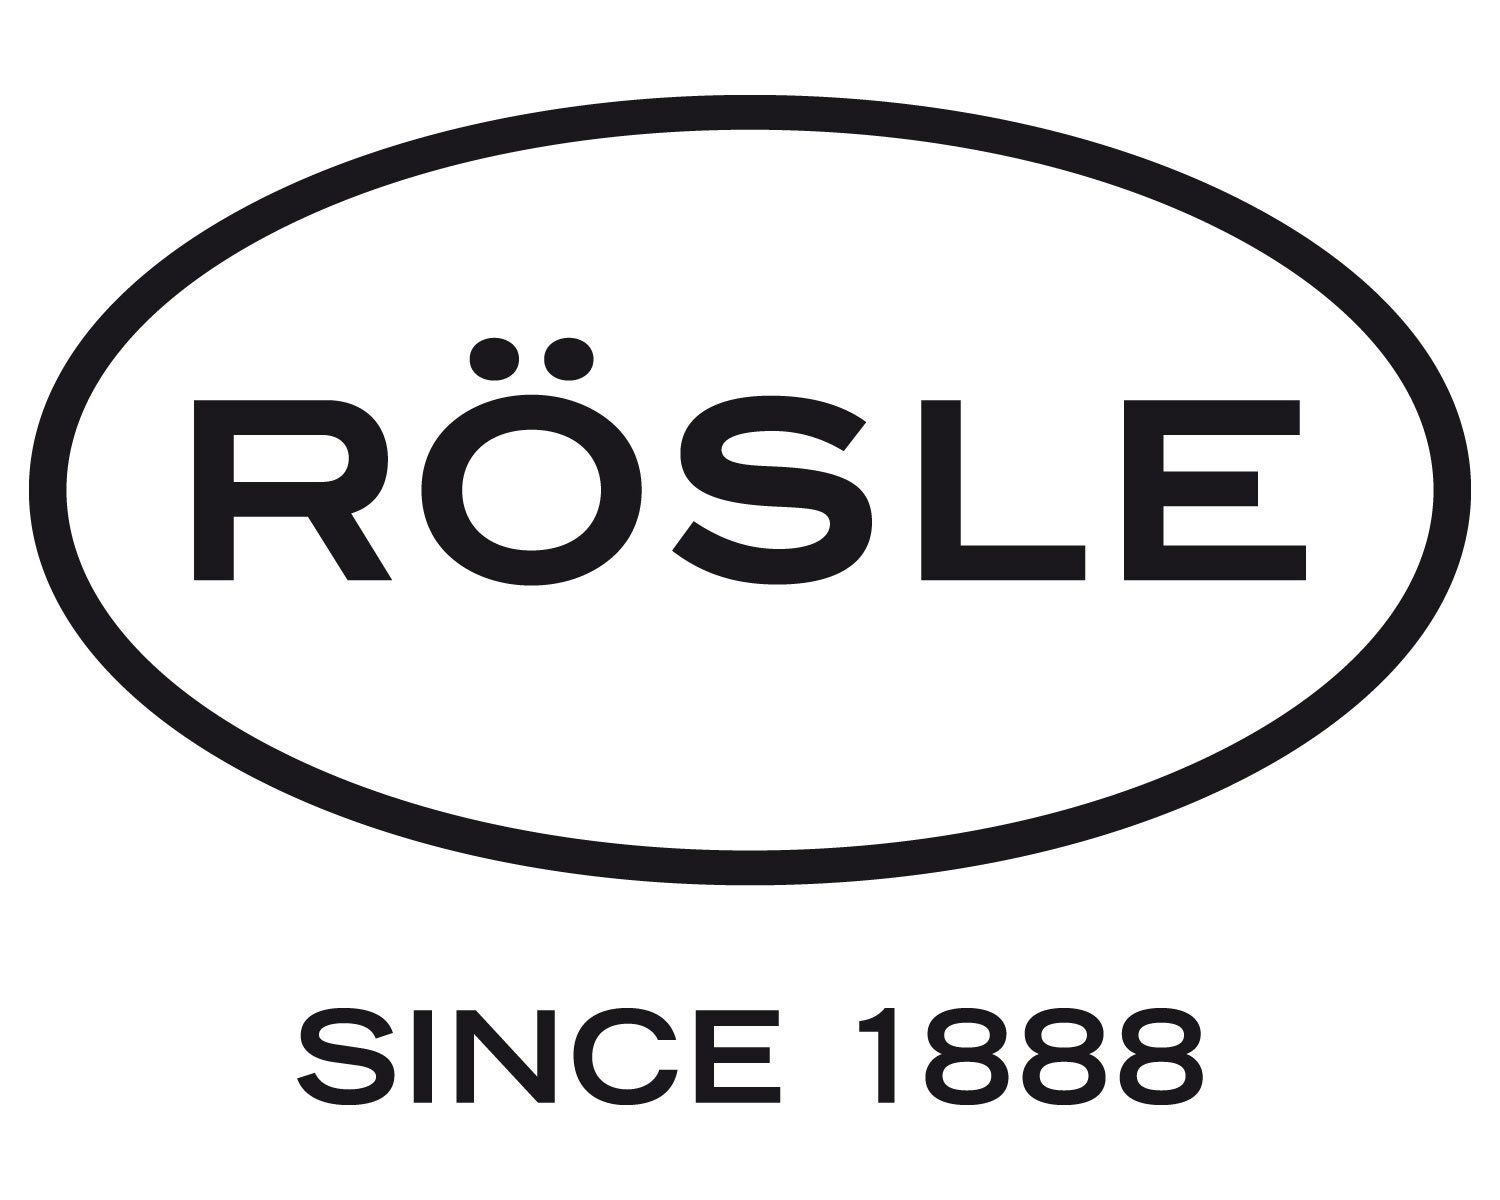 rösle heavy duty cm stainless steel deep frying pan with i  - rösle heavy duty cm stainless steel deep frying pan with imotion teflonplatinum plus non stick coating suitable electric induction gas and ceramic